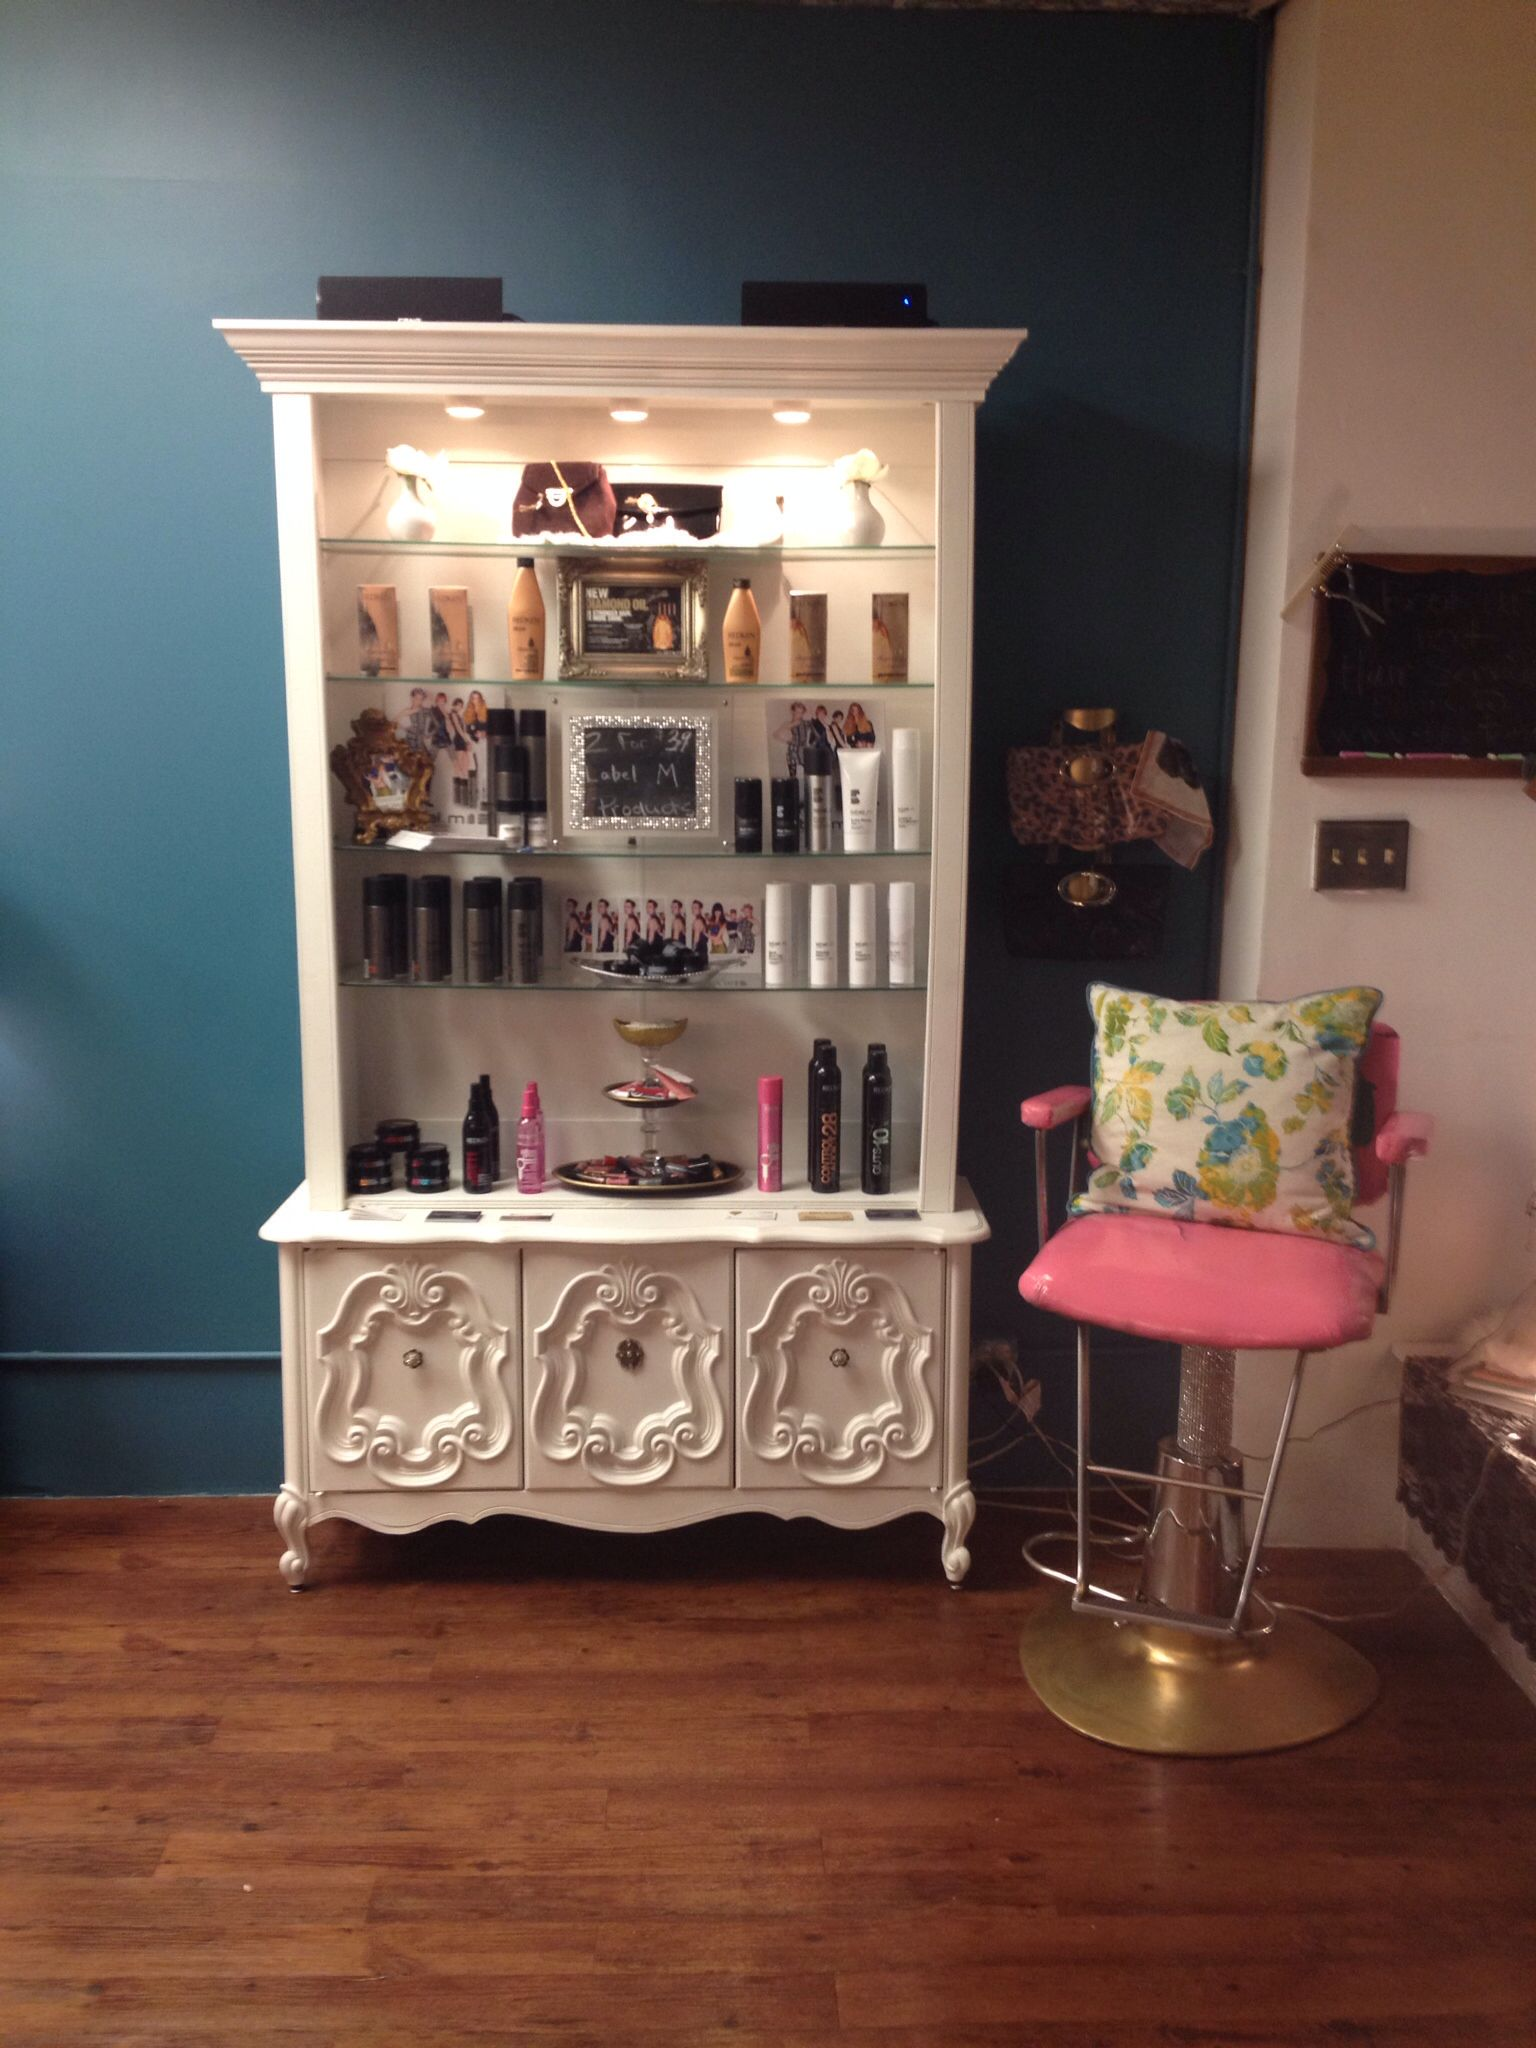 Salon Product Display And Cute Pink Chair